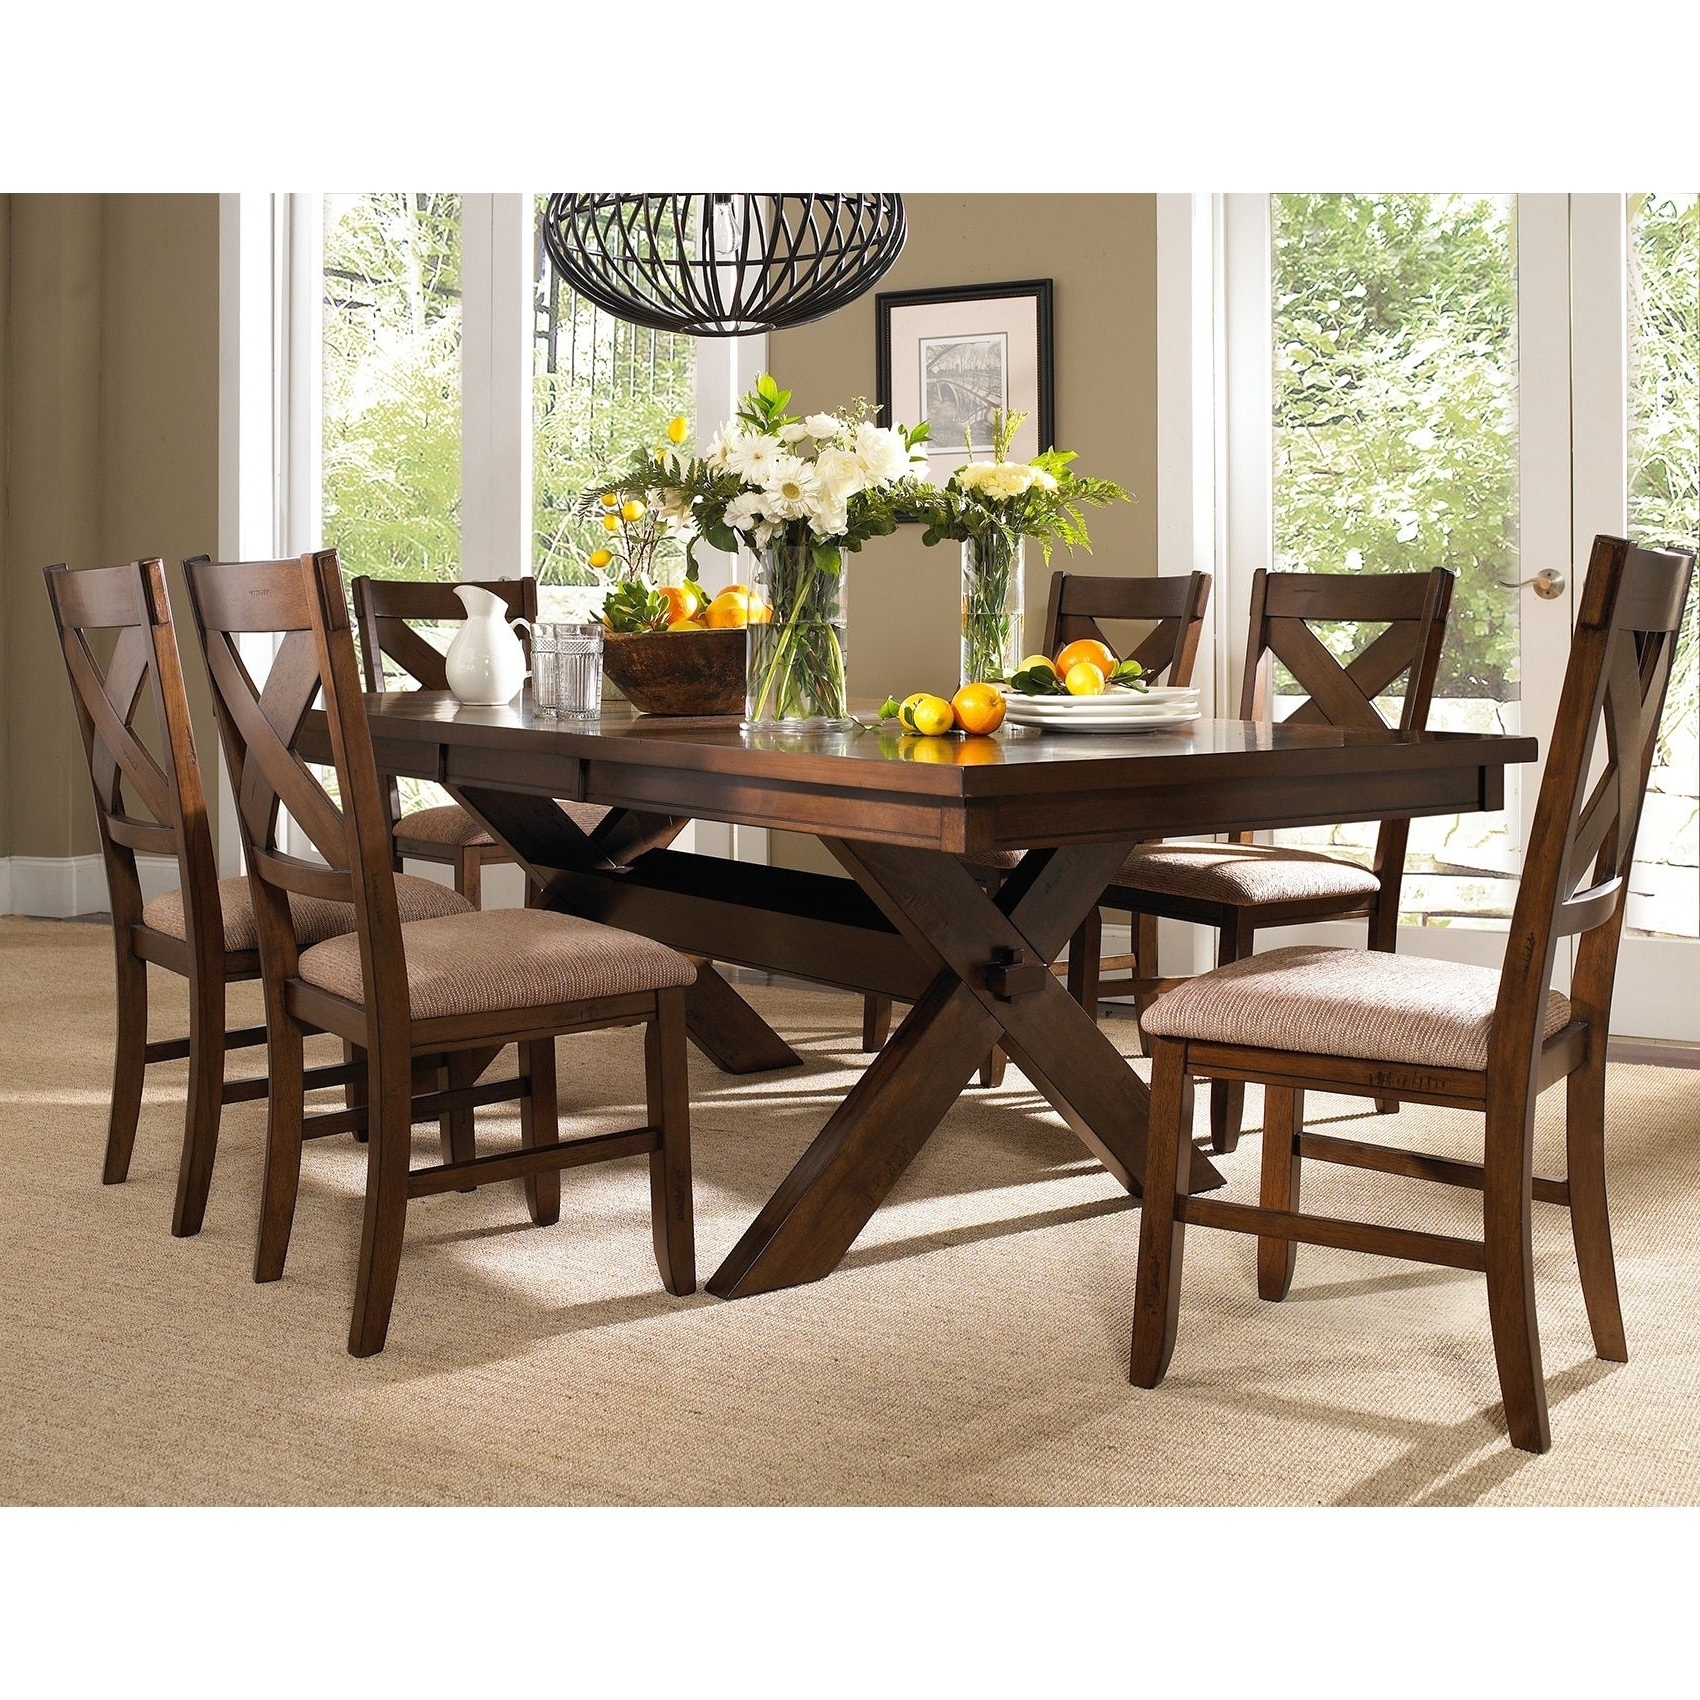 Most Recent Craftsman 7 Piece Rectangle Extension Dining Sets With Arm & Side Chairs With 7 Piece Solid Wood Dining Set With Table And 6 Chairs (Dark Hazelnut (Gallery 1 of 25)